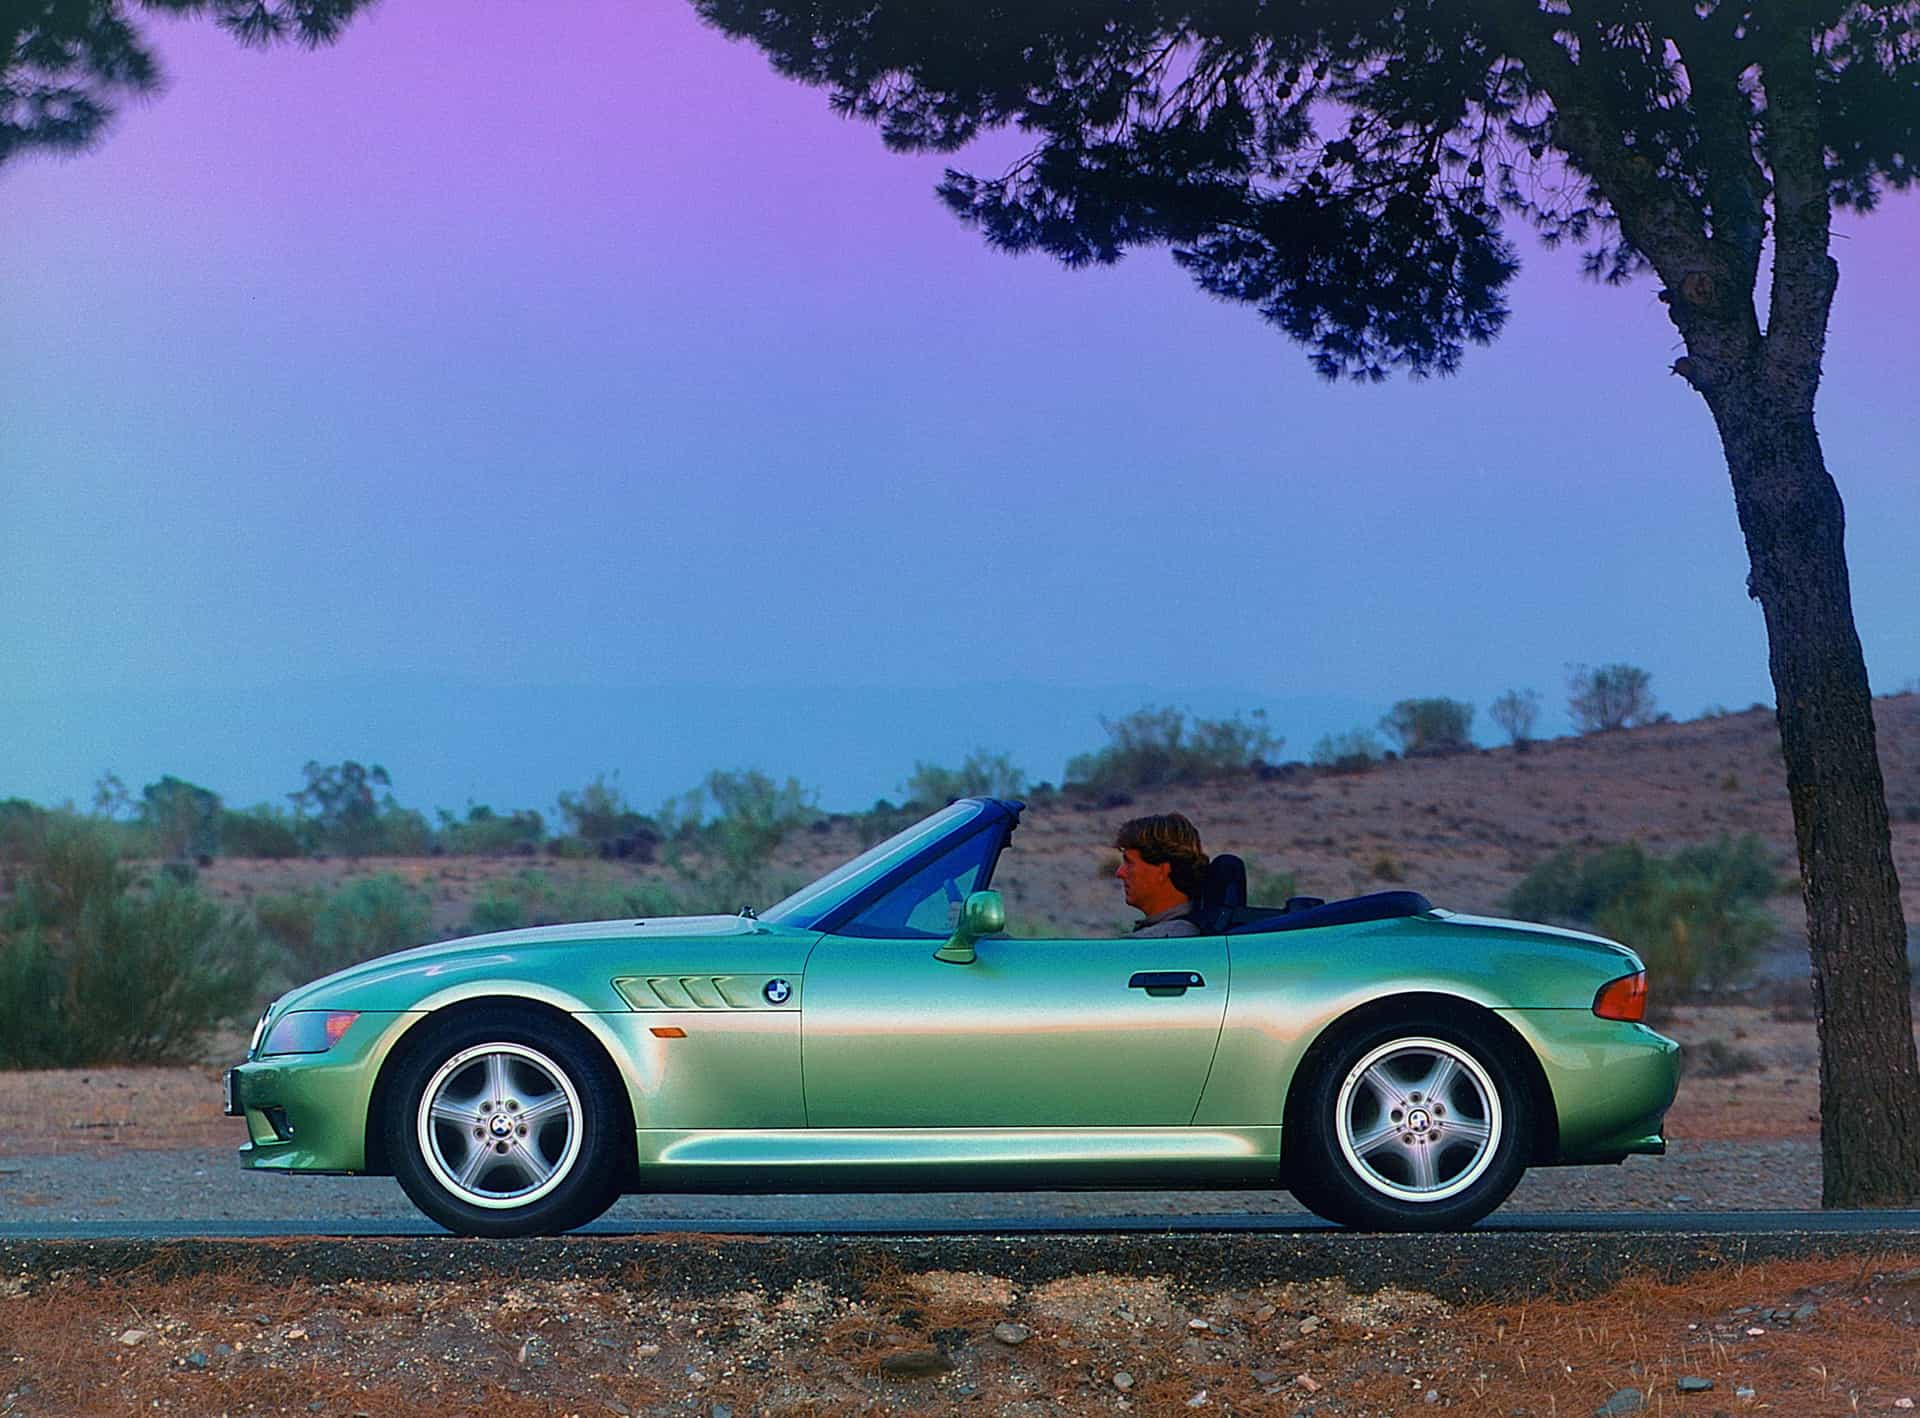 Bmw Celebrates The 25th Anniversary Of The Iconic Z3